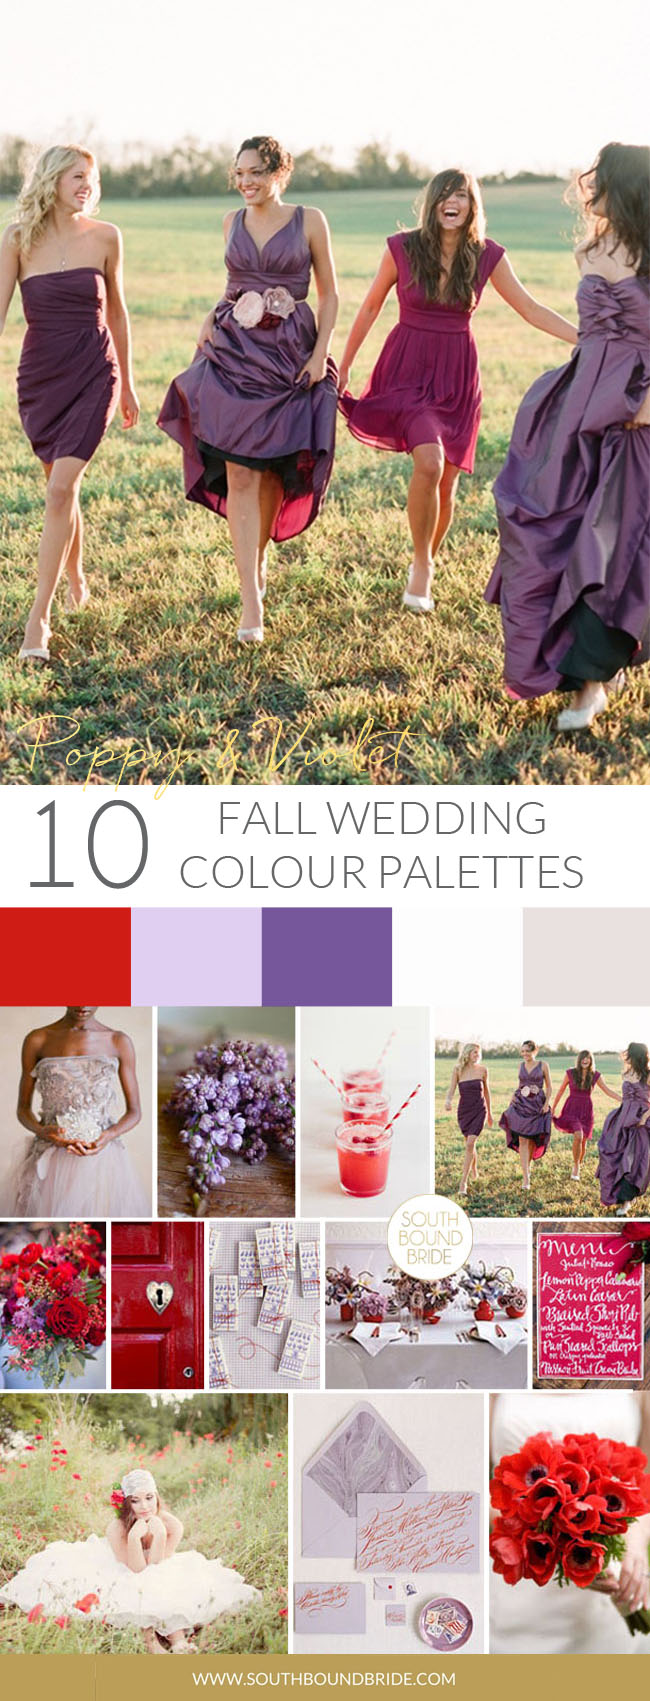 Poppy & Violet Fall Wedding Palette | SouthBound Bride